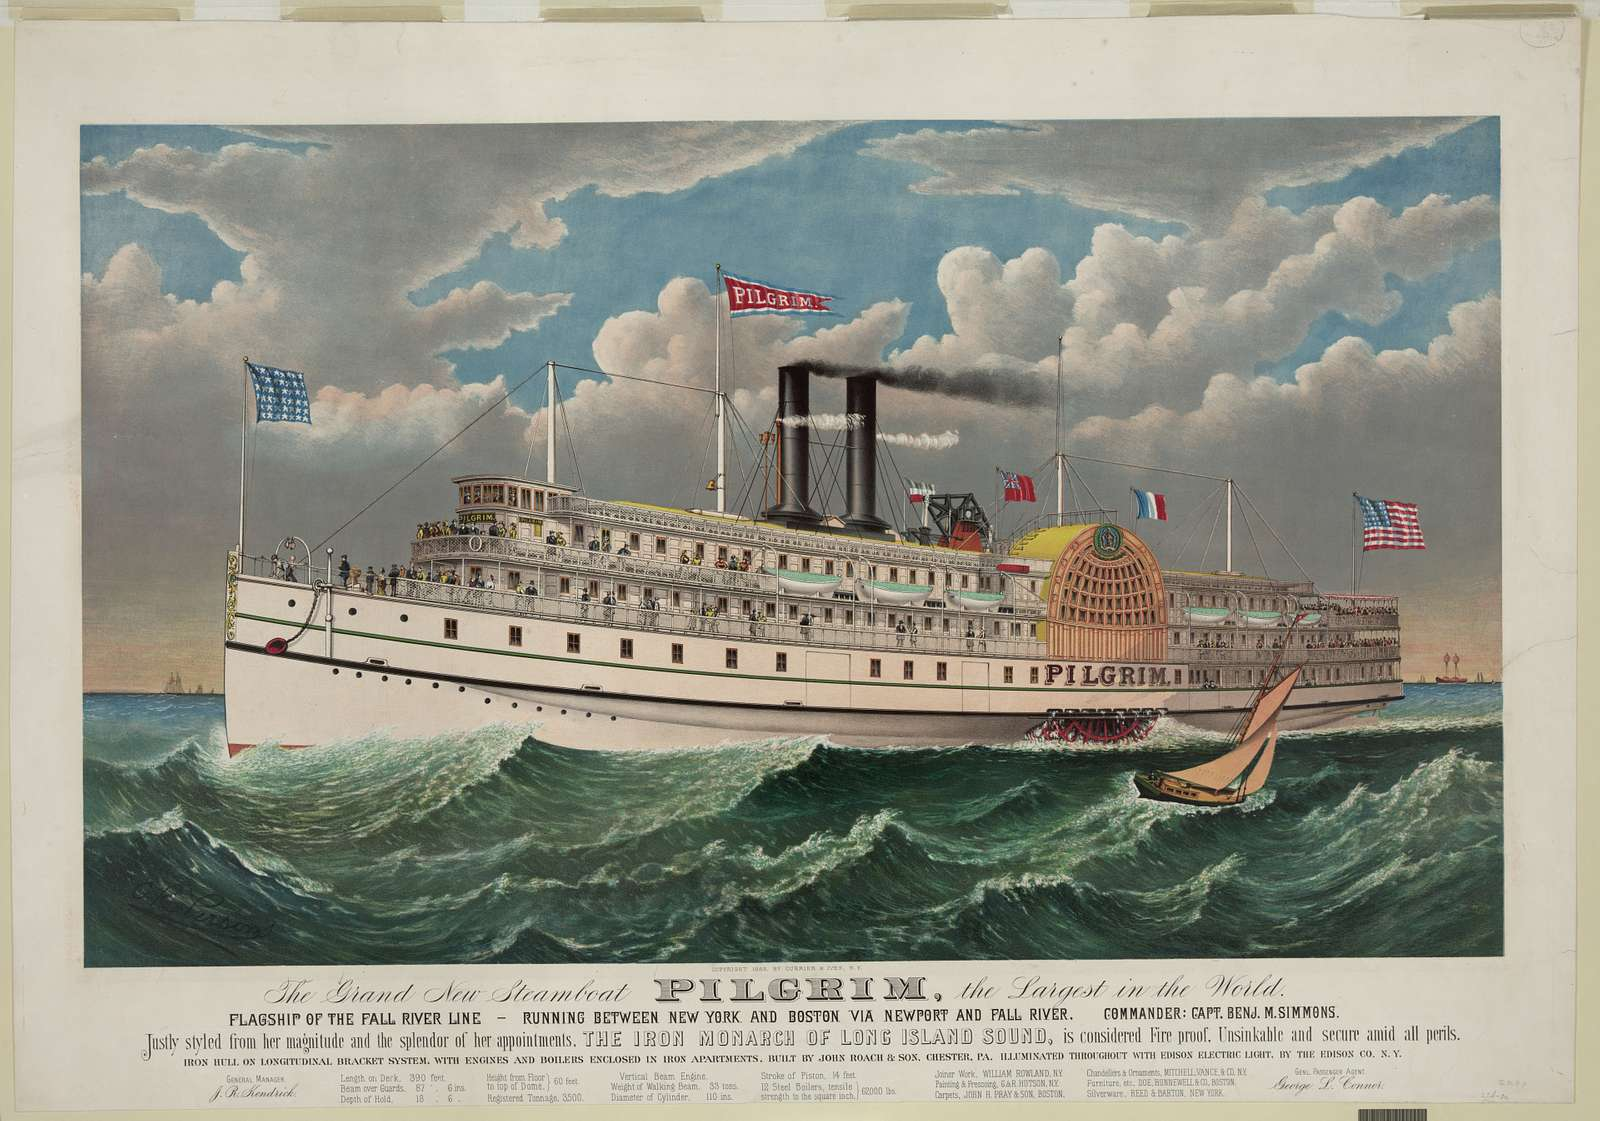 The grand new steamboat Pilgrim: the largest in the world: flagship of the Fall River line - running between New York and Boston via New port and Fall River - commander: Capt. Benj. M. Simmons / C.R. Parsons.